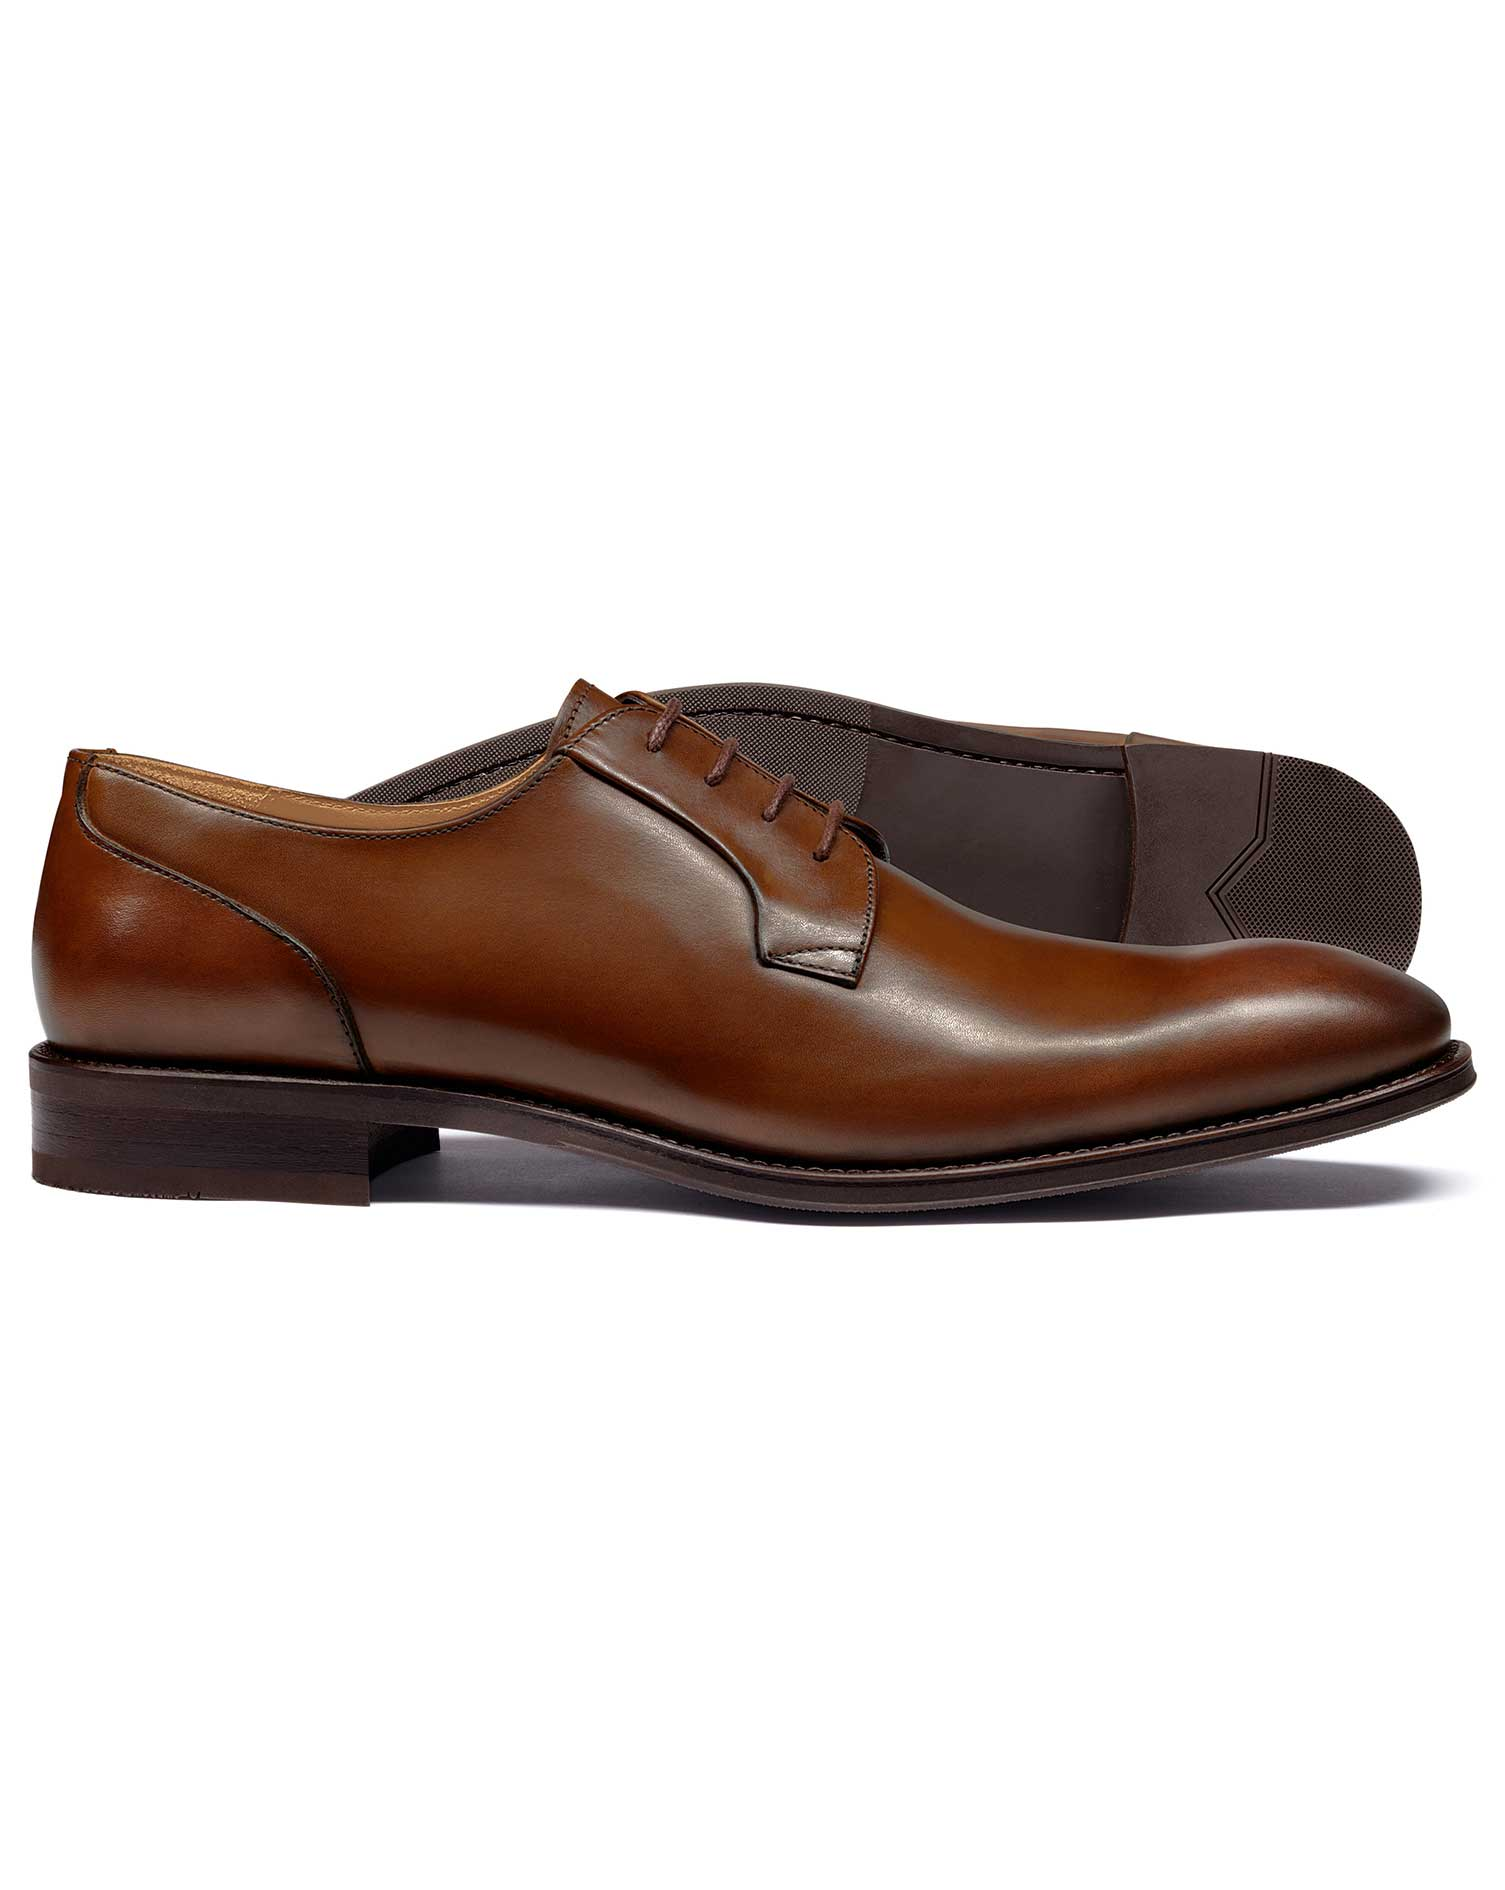 Tan Derby Shoes Size 9 R by Charles Tyrwhitt